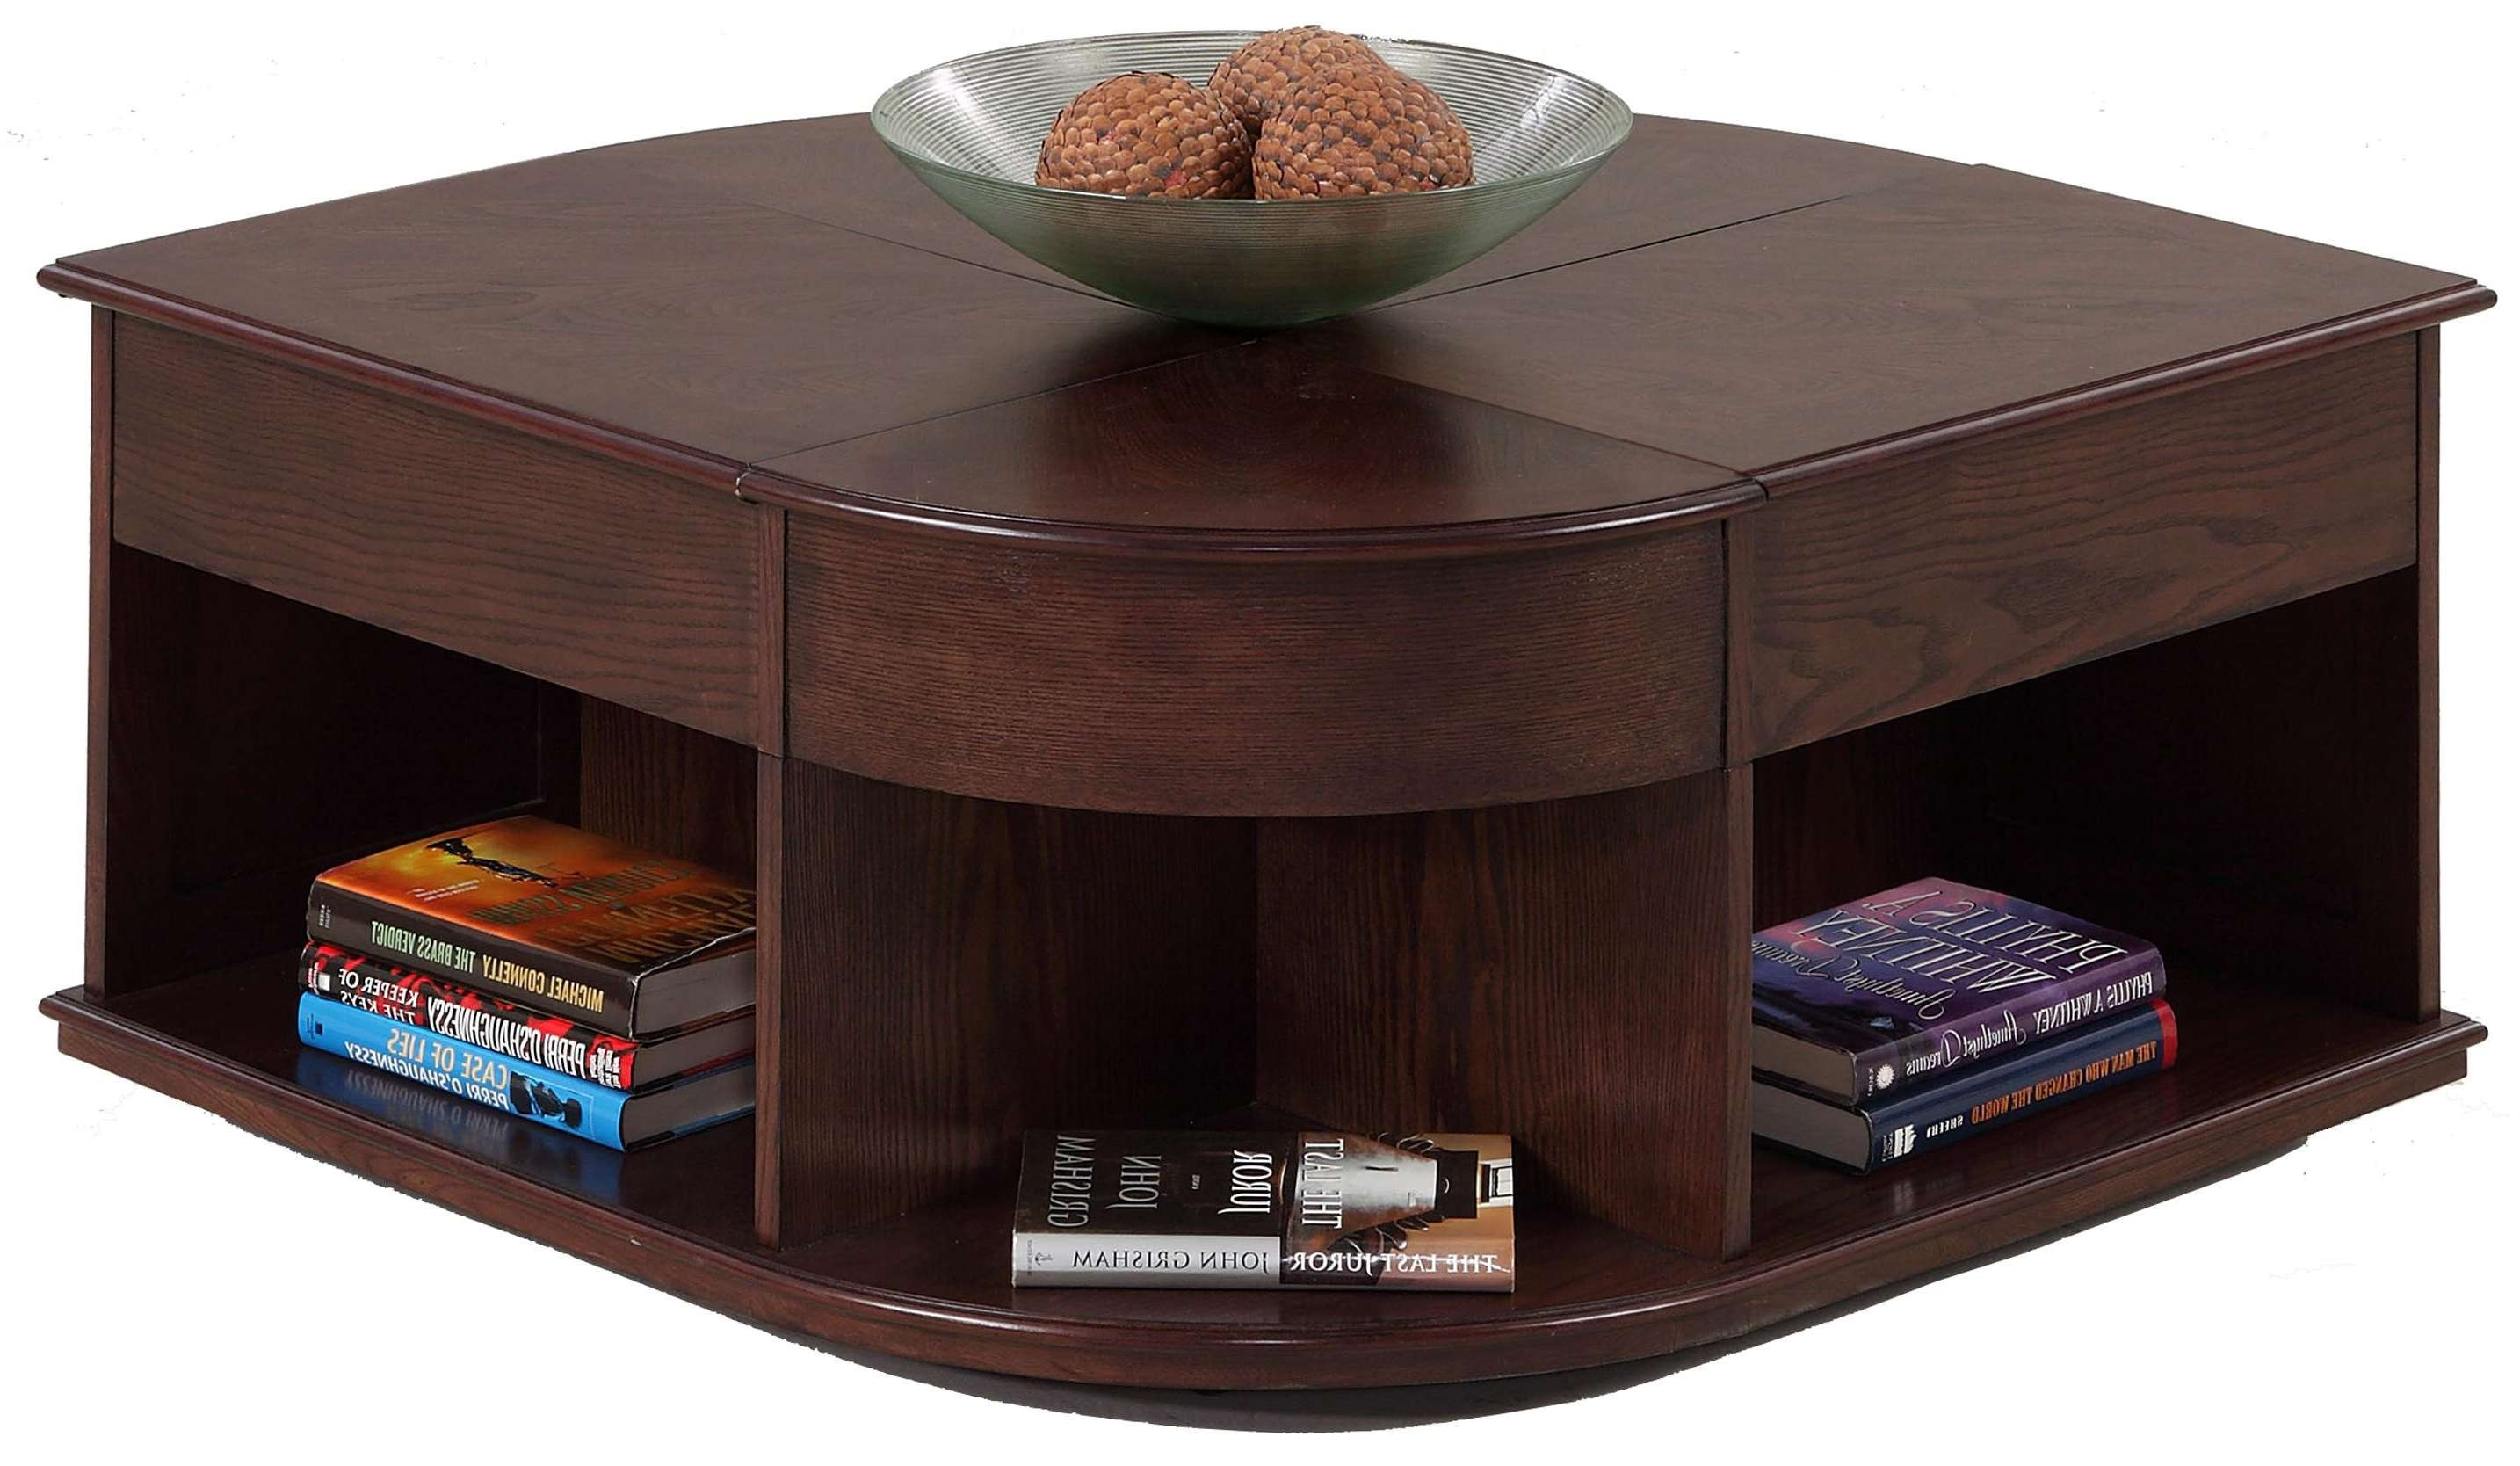 Furniture Corner Coffee Table Ideas High Resolution Wallpaper In 2017 Corner Coffee Tables (View 2 of 20)